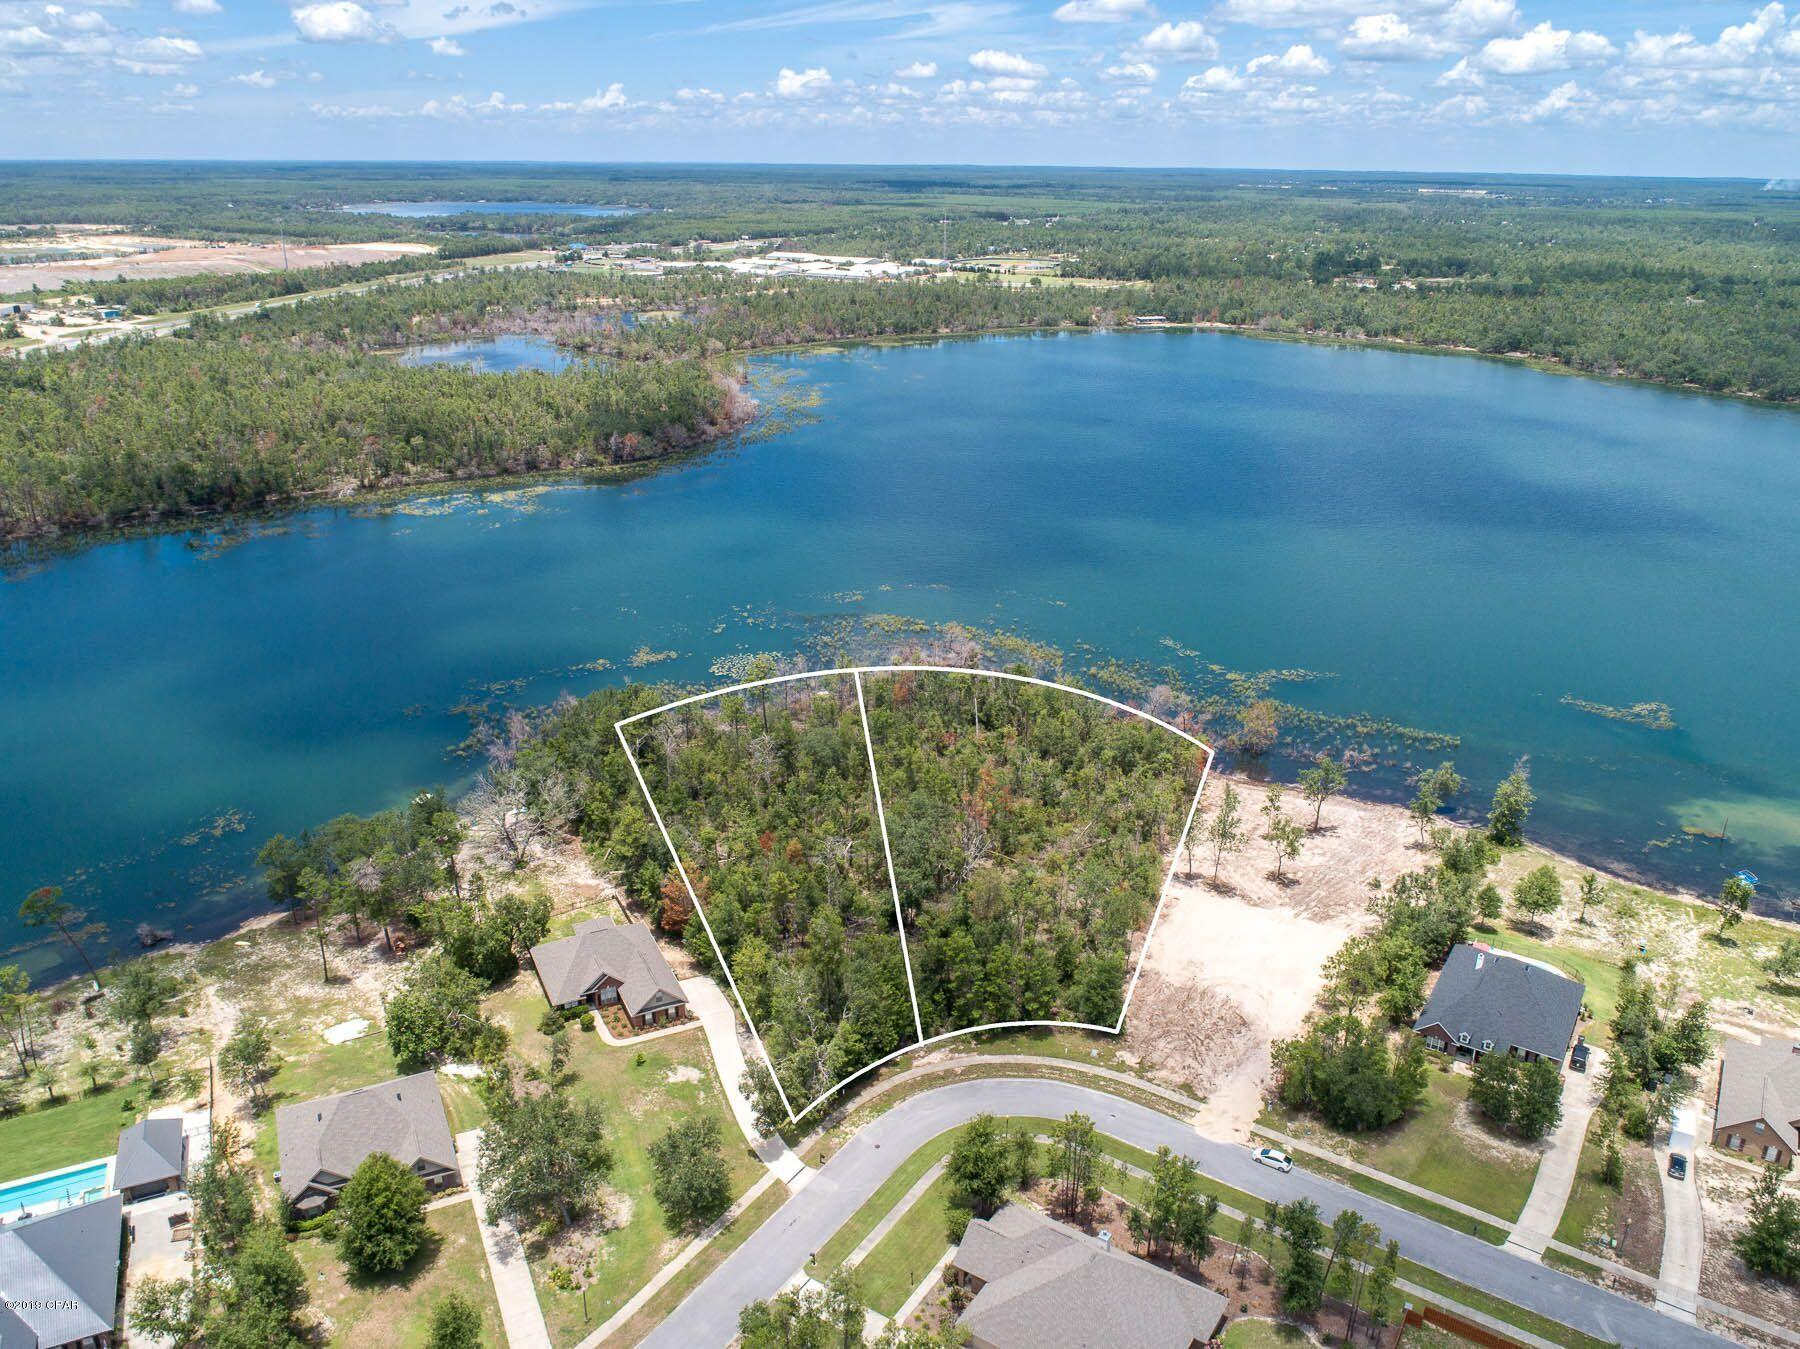 Photo of 117 Lake Merial Shores Drive Panama City FL 32409